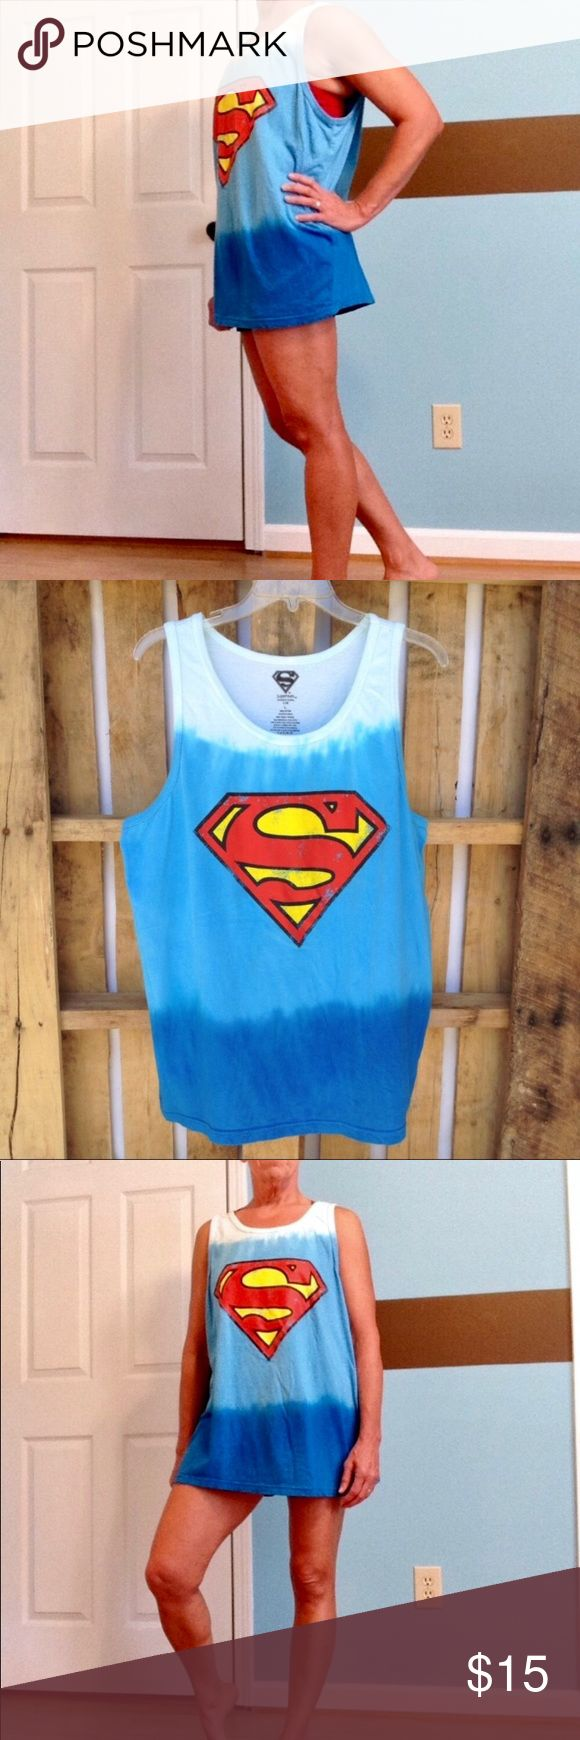 "Ombré distressed Superman graphic tank top This loose fitting Superman tank top could be worn alone, or as a swimsuit coverup. 100% cotton. Distressed Superman emblem.  There is one spot on the back right shoulder otherwise absolutely perfect!  APPROX FLAT MEASUREMENTS  26"" ↕️ 24"" ↔️ pit to pit BG22 #superman #blueombre #tanktop DC Comics Tops Tank Tops"